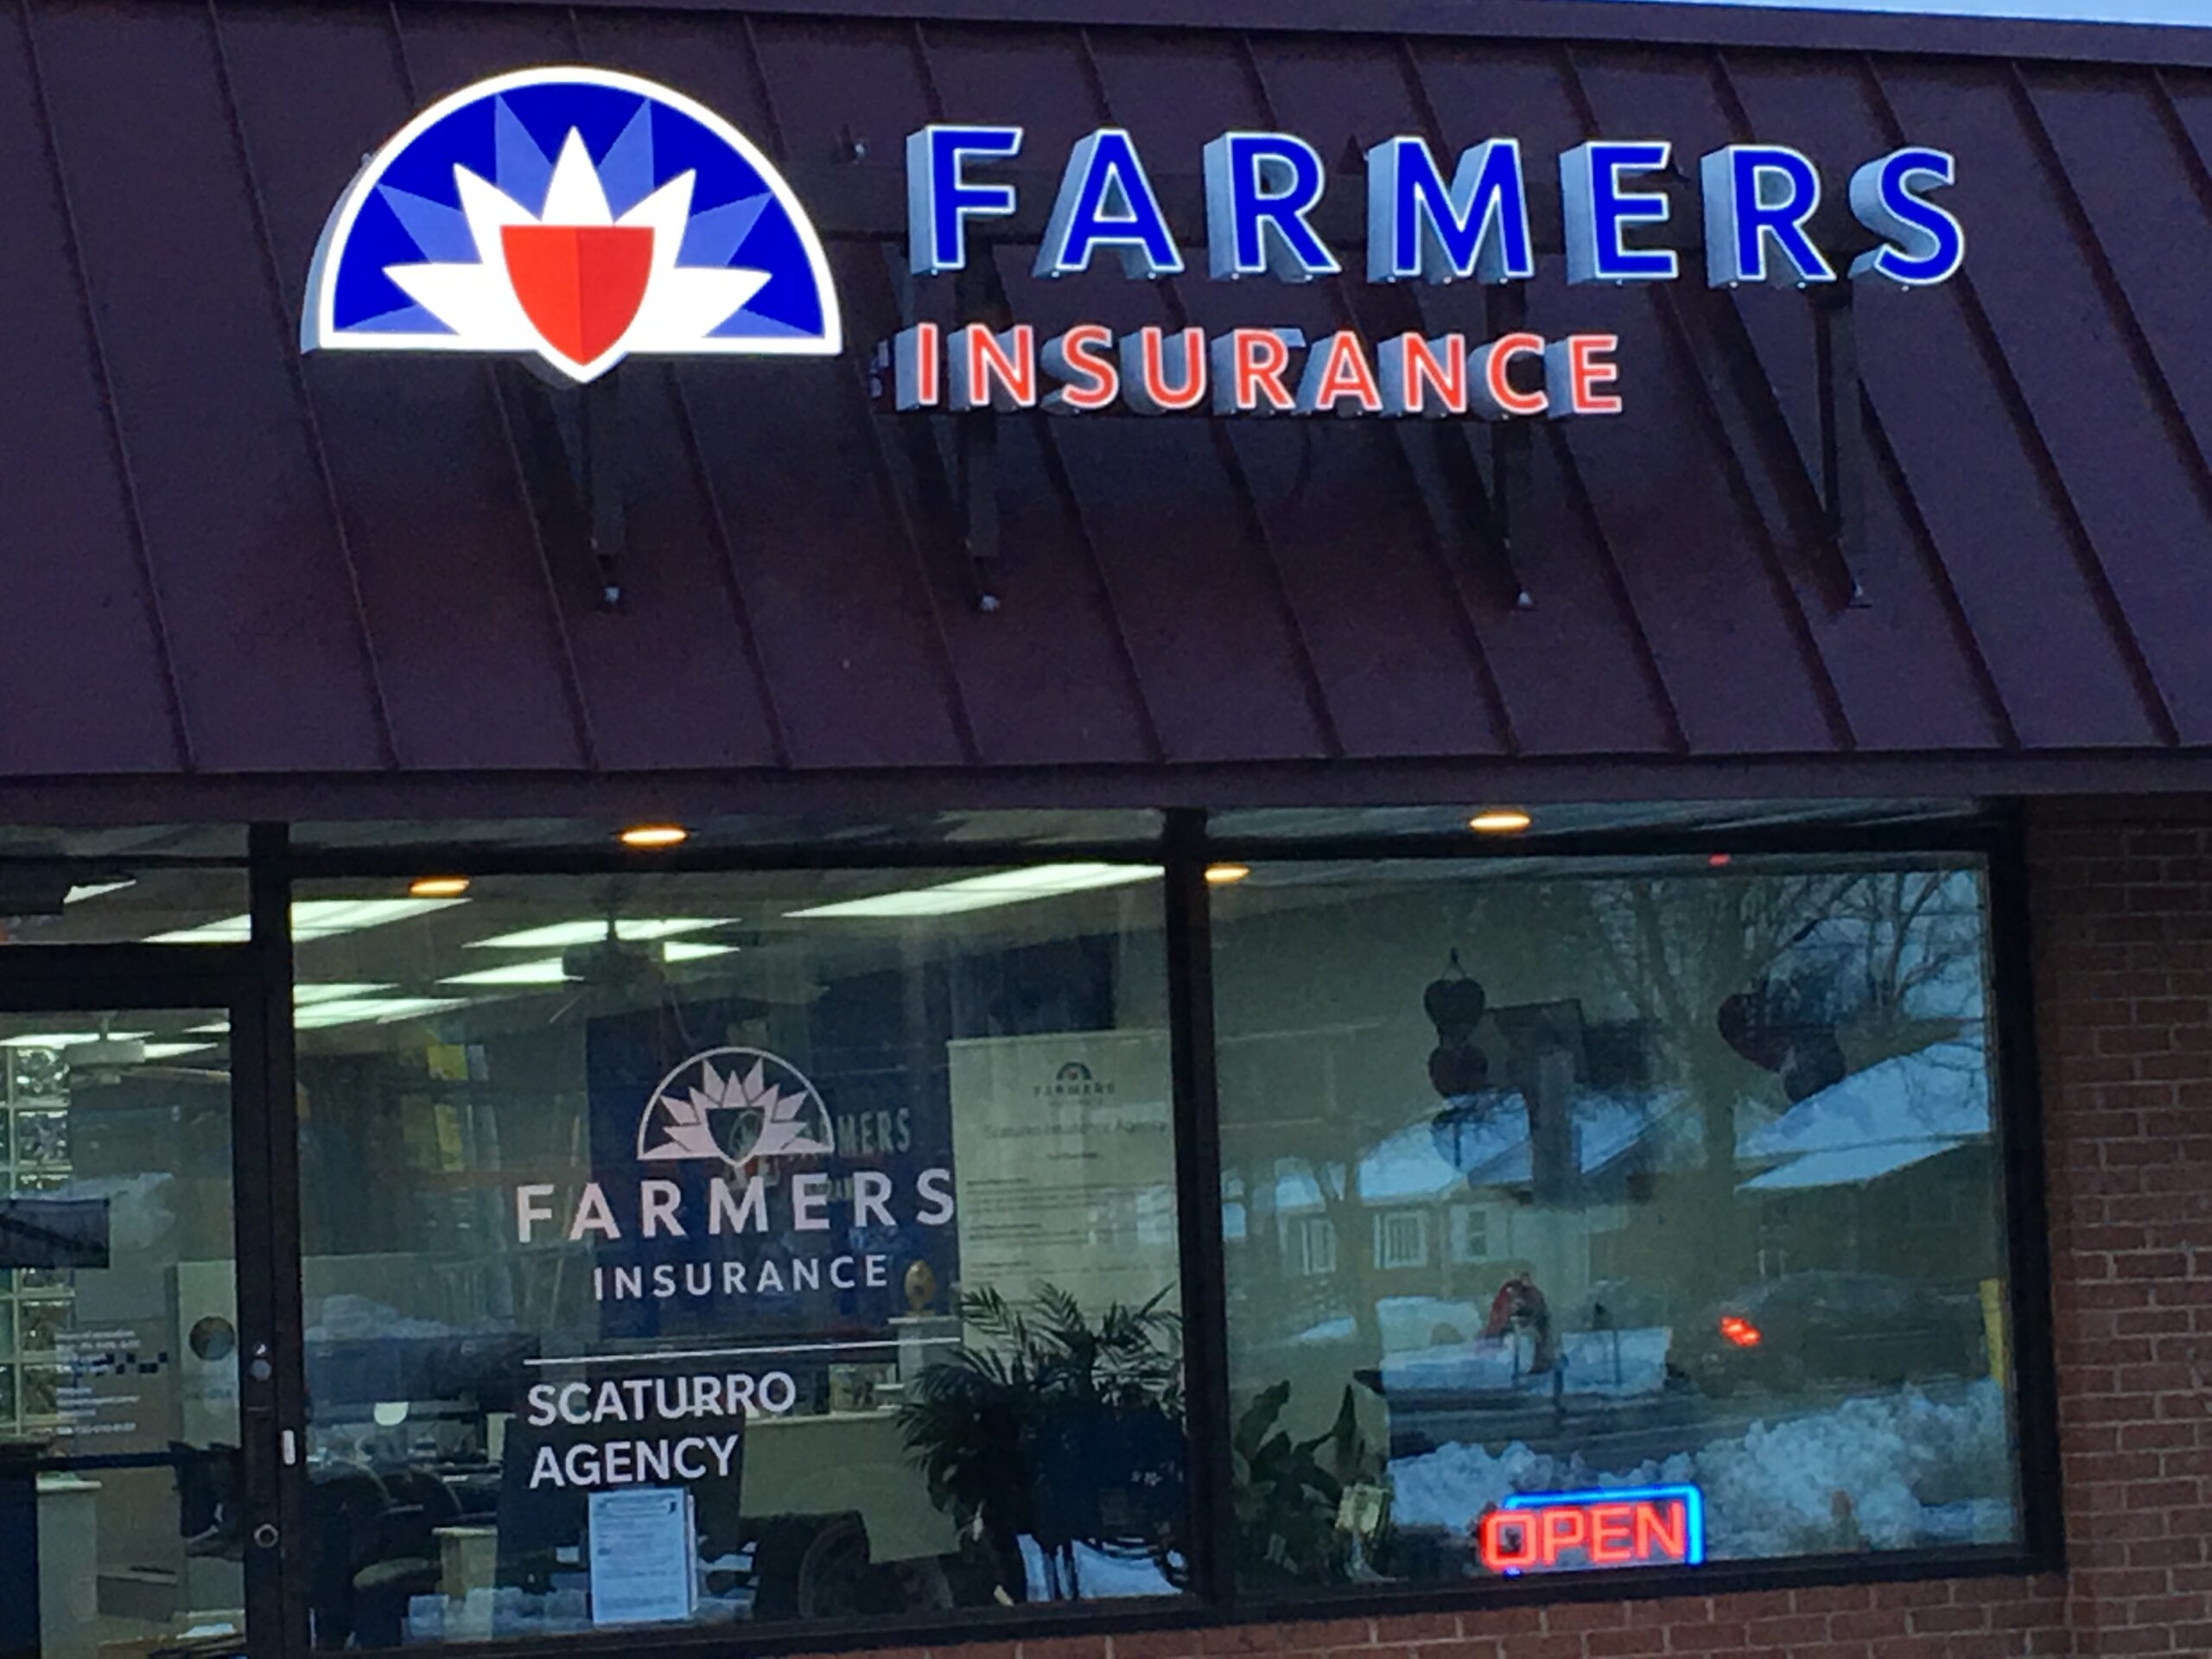 Scaturro Agency LLC. / Farmers Insurance